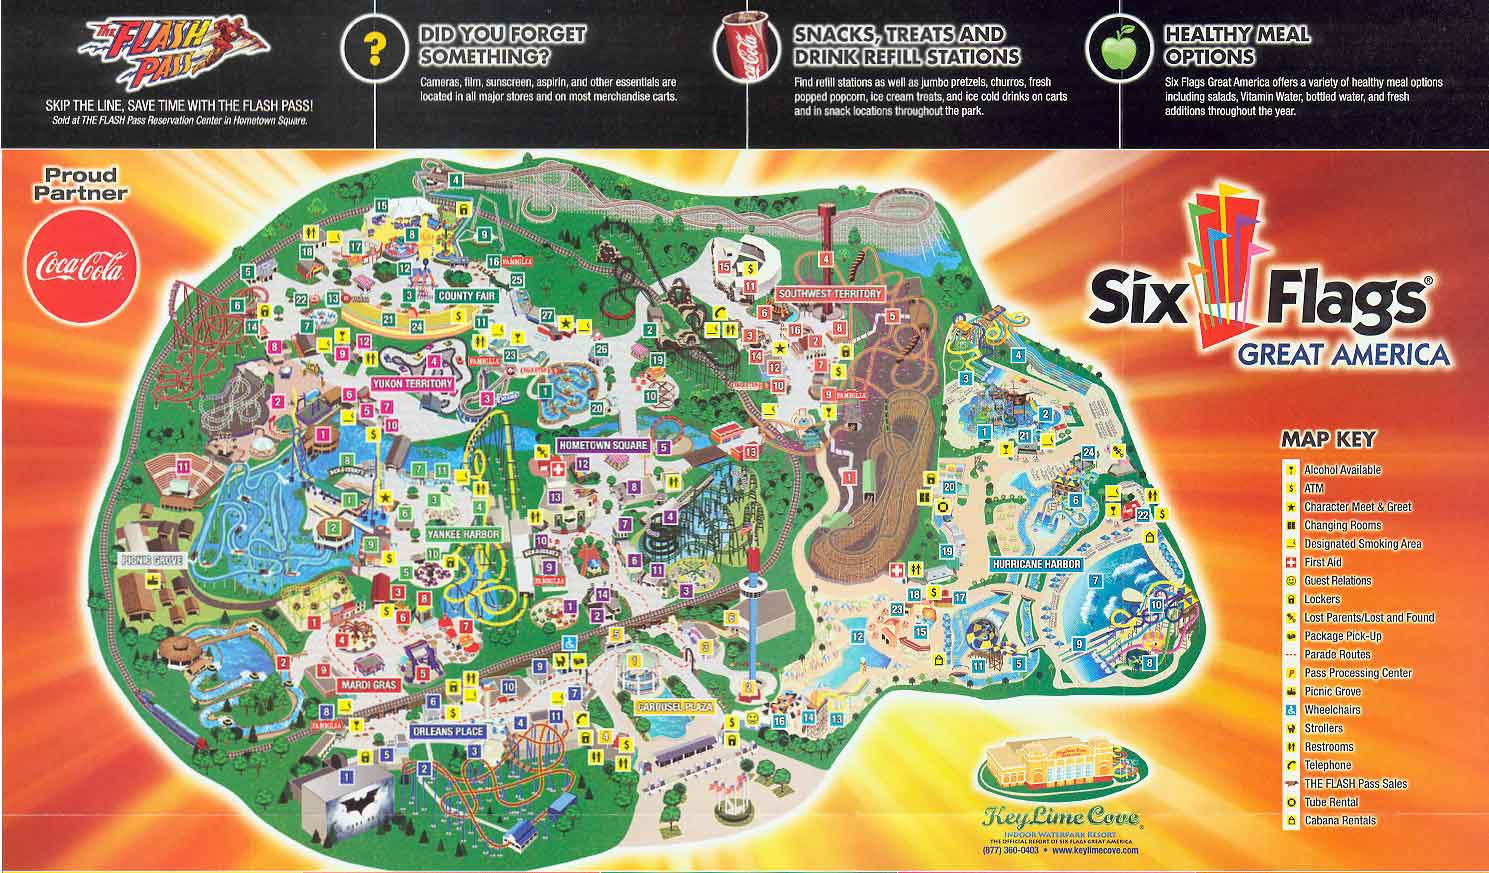 Six flags great america chicago deals